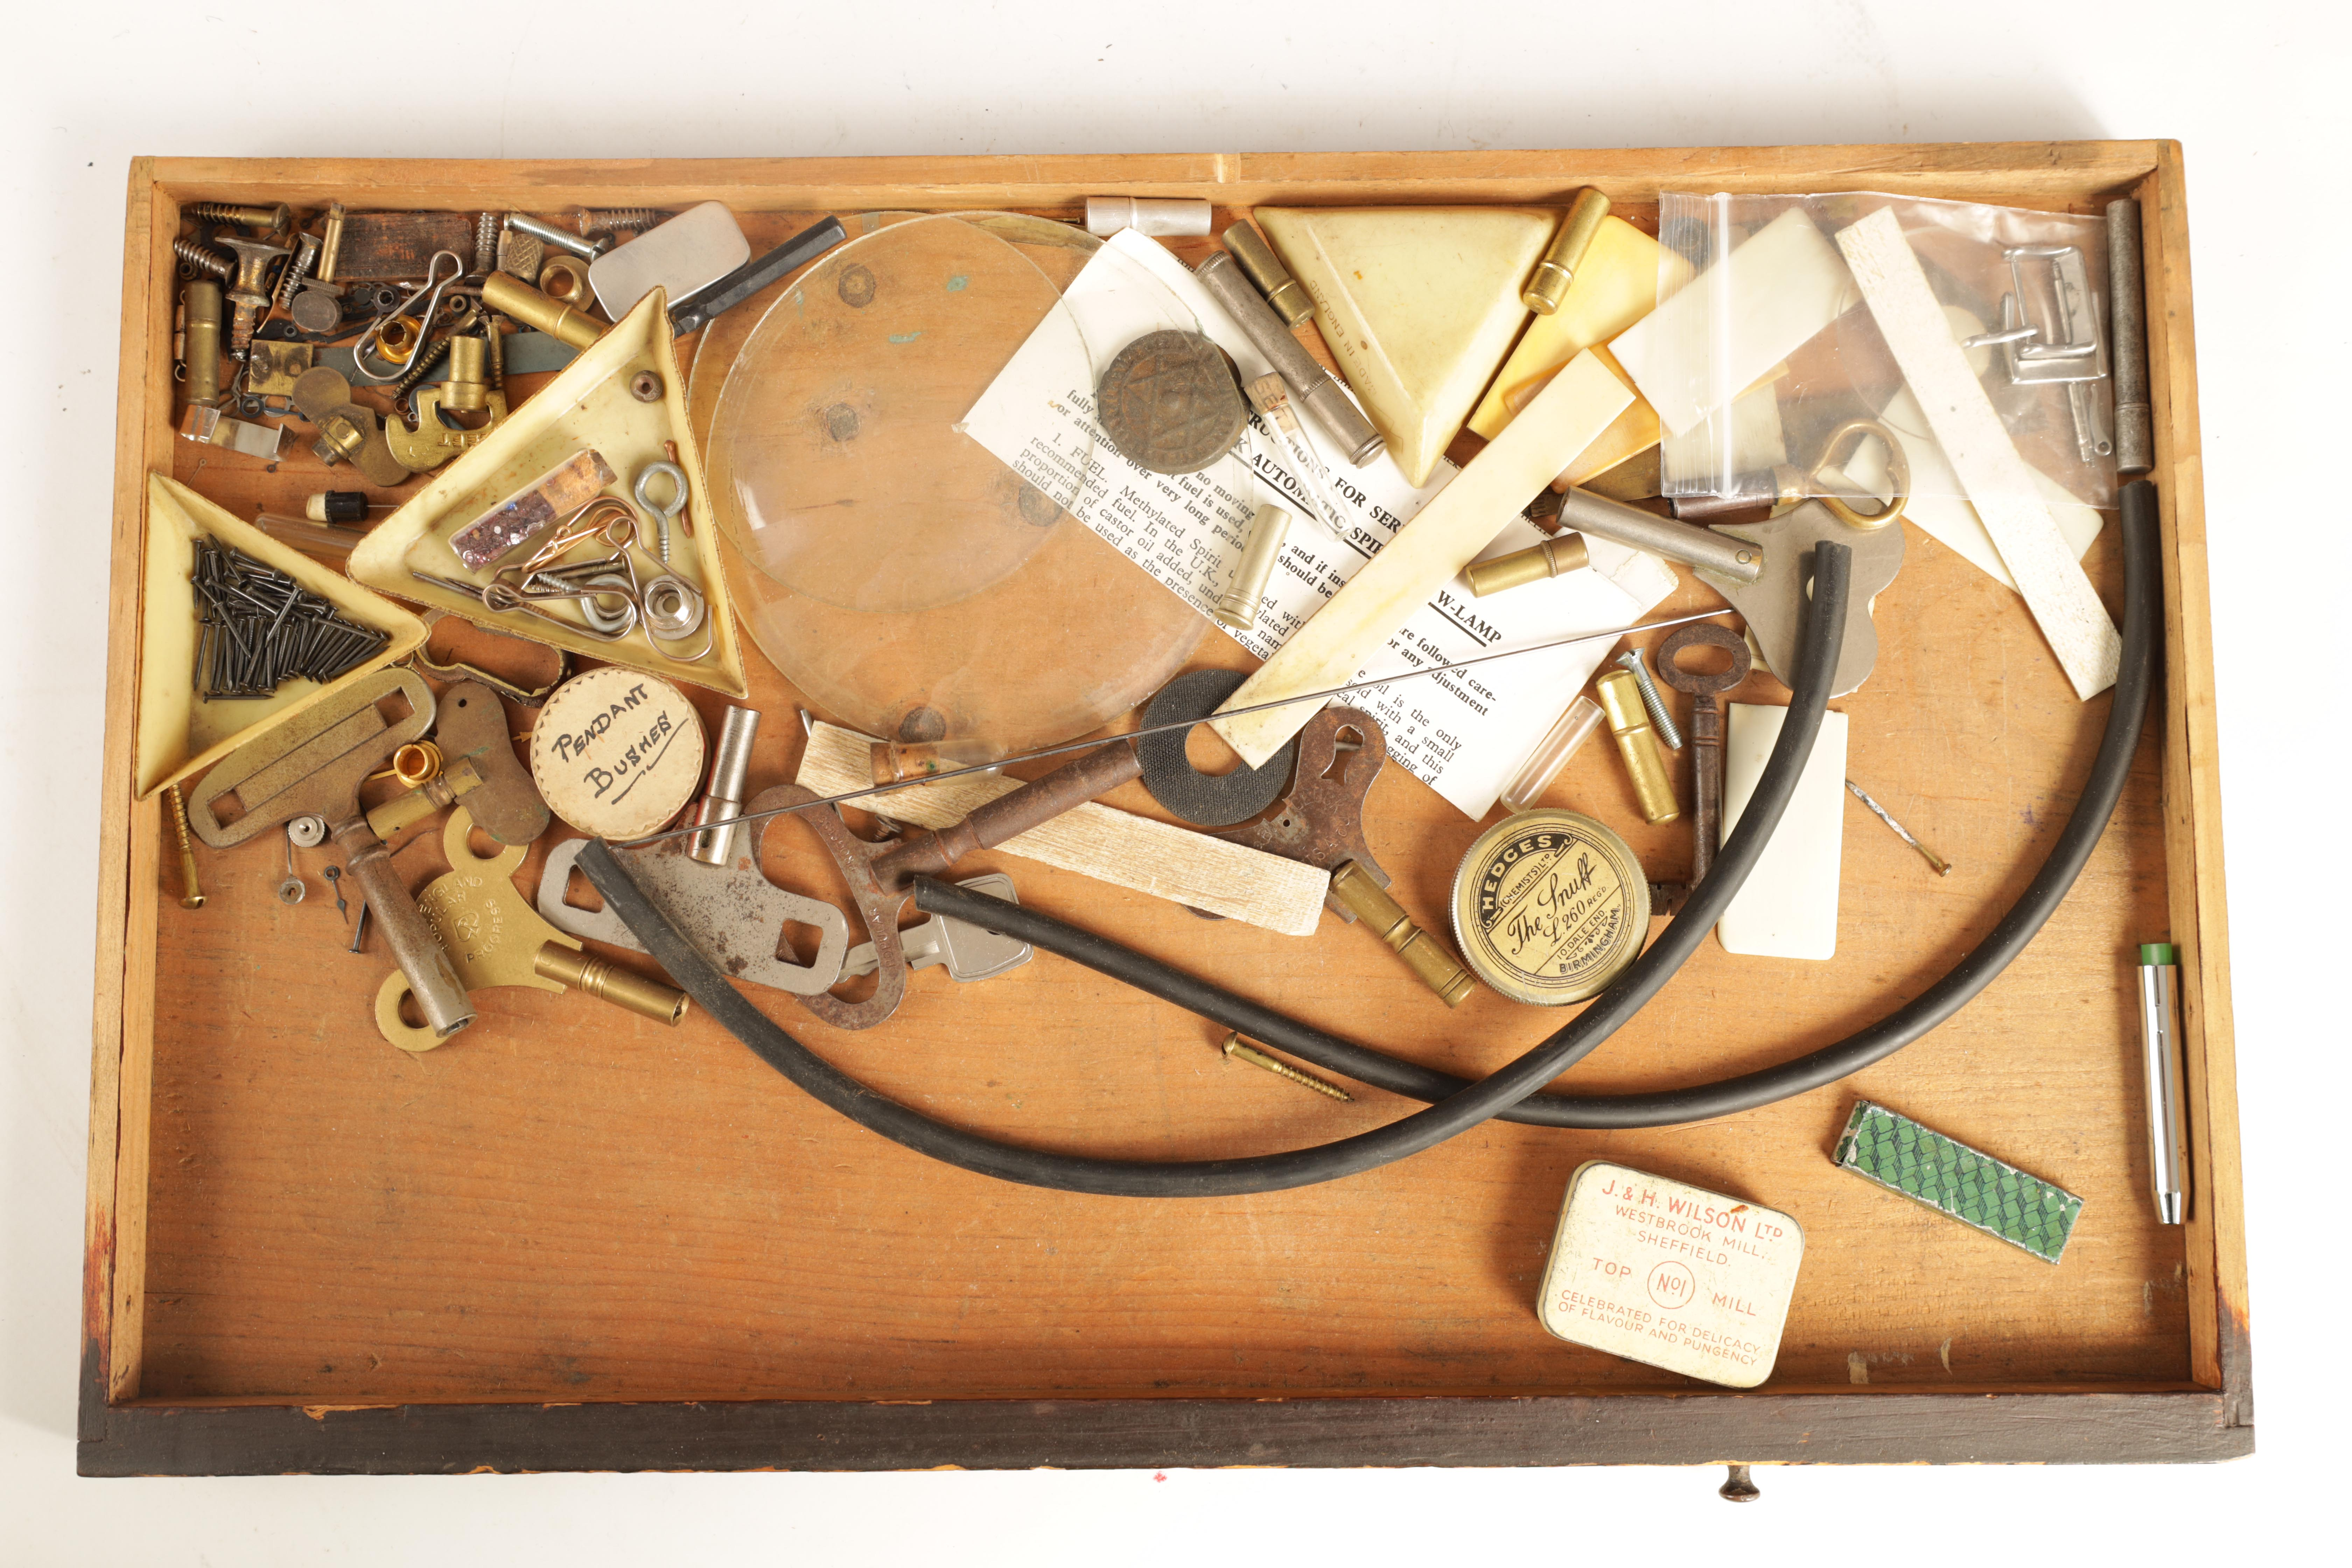 A LARGE COLLECTION OF JEWELERS AND WATCHMAKERS TOOLS contained in a set of pine drawers - Image 10 of 12